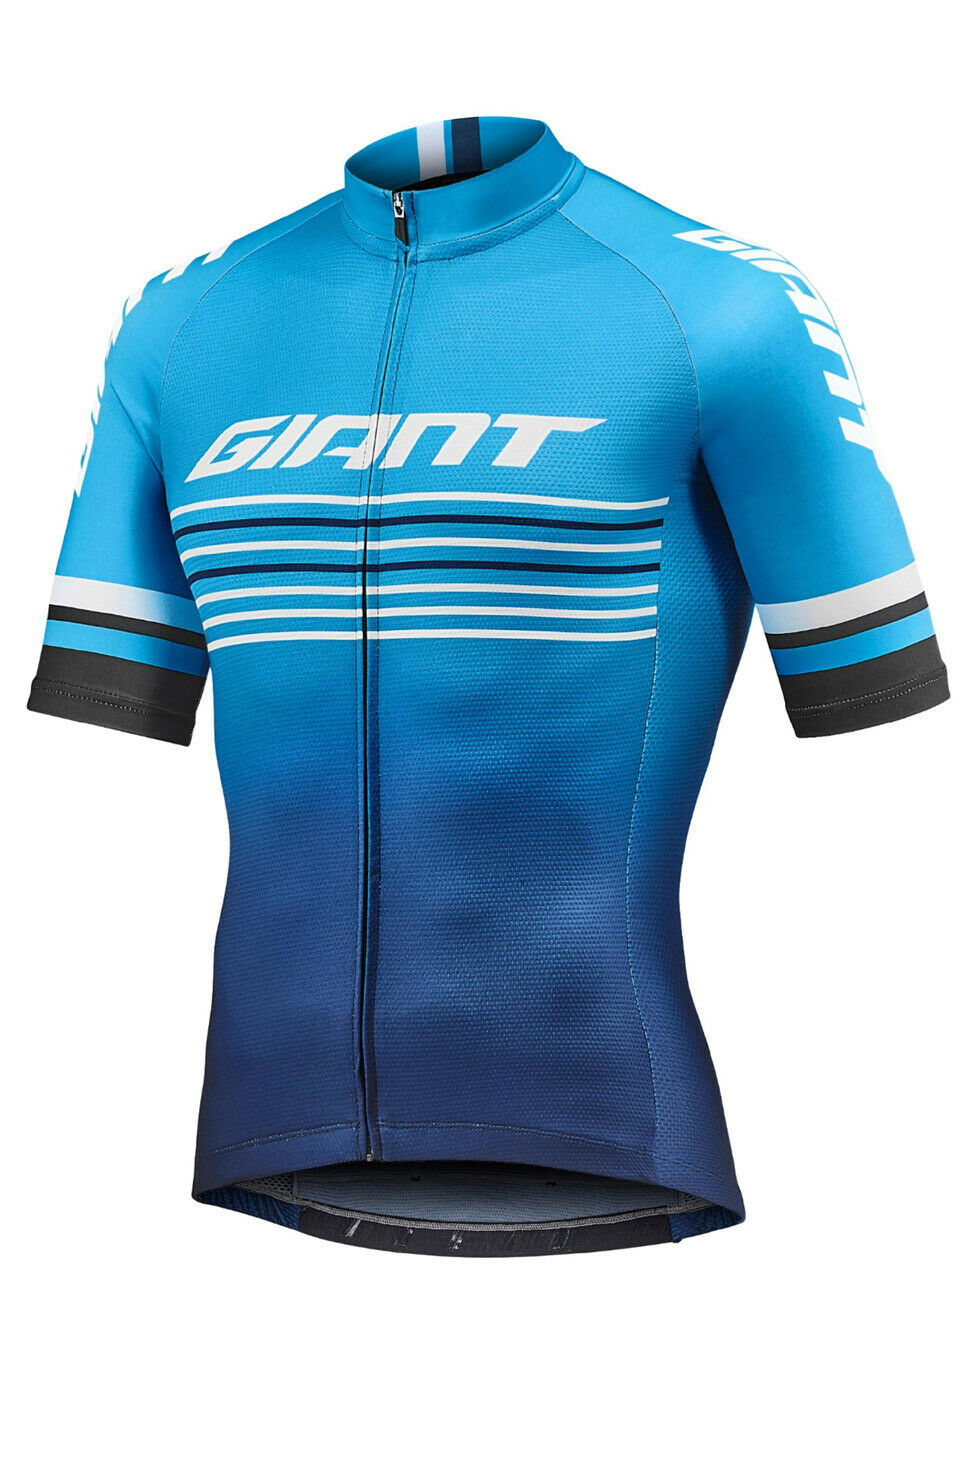 Giant race day official jersey short  sleeve road men bluee white  online discount